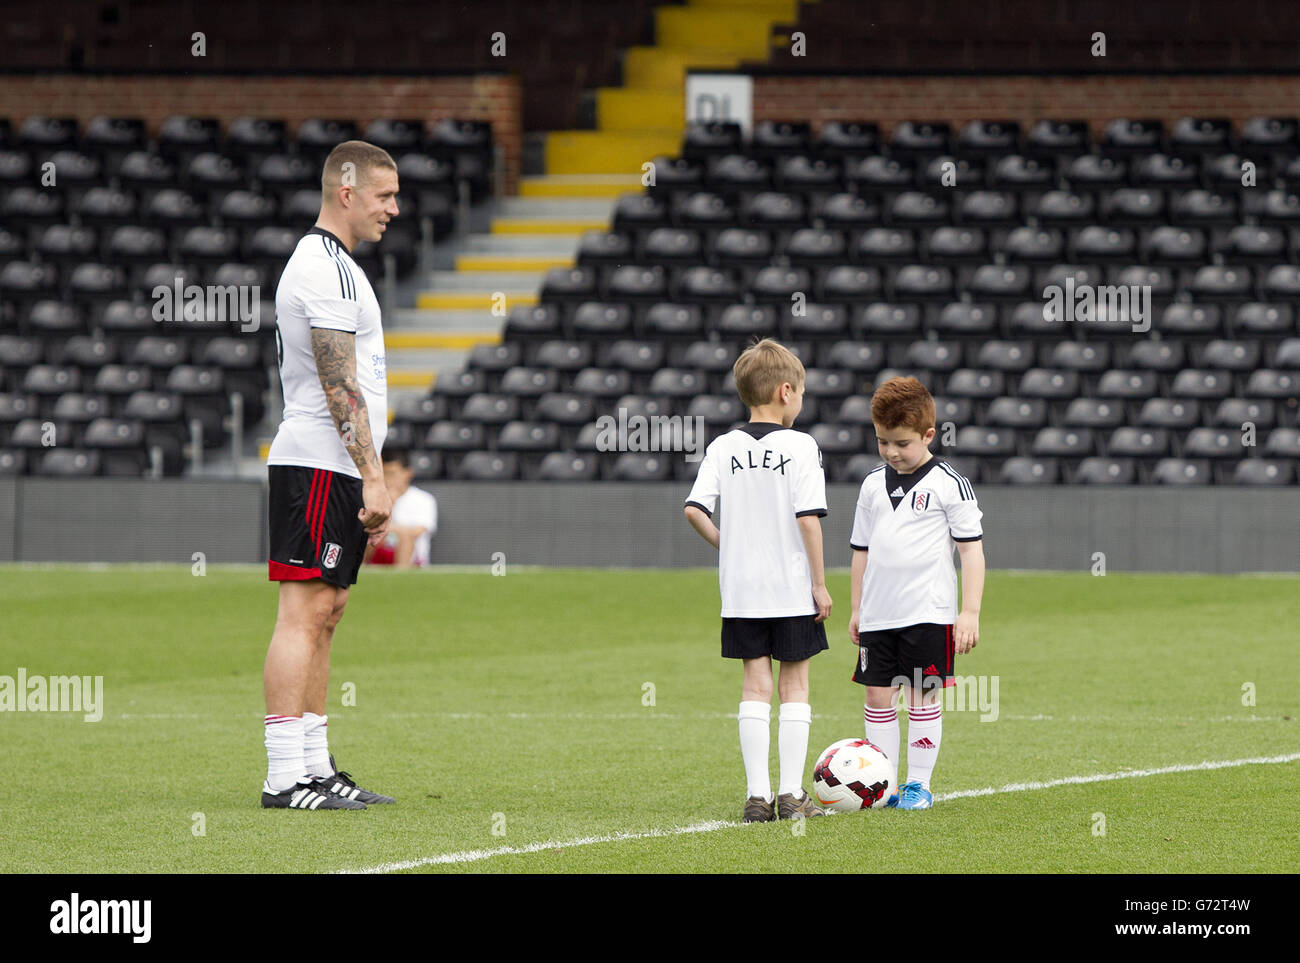 Soccer - Charity All Star Match - Fulham v Sealand - Craven Cottage - Stock Image